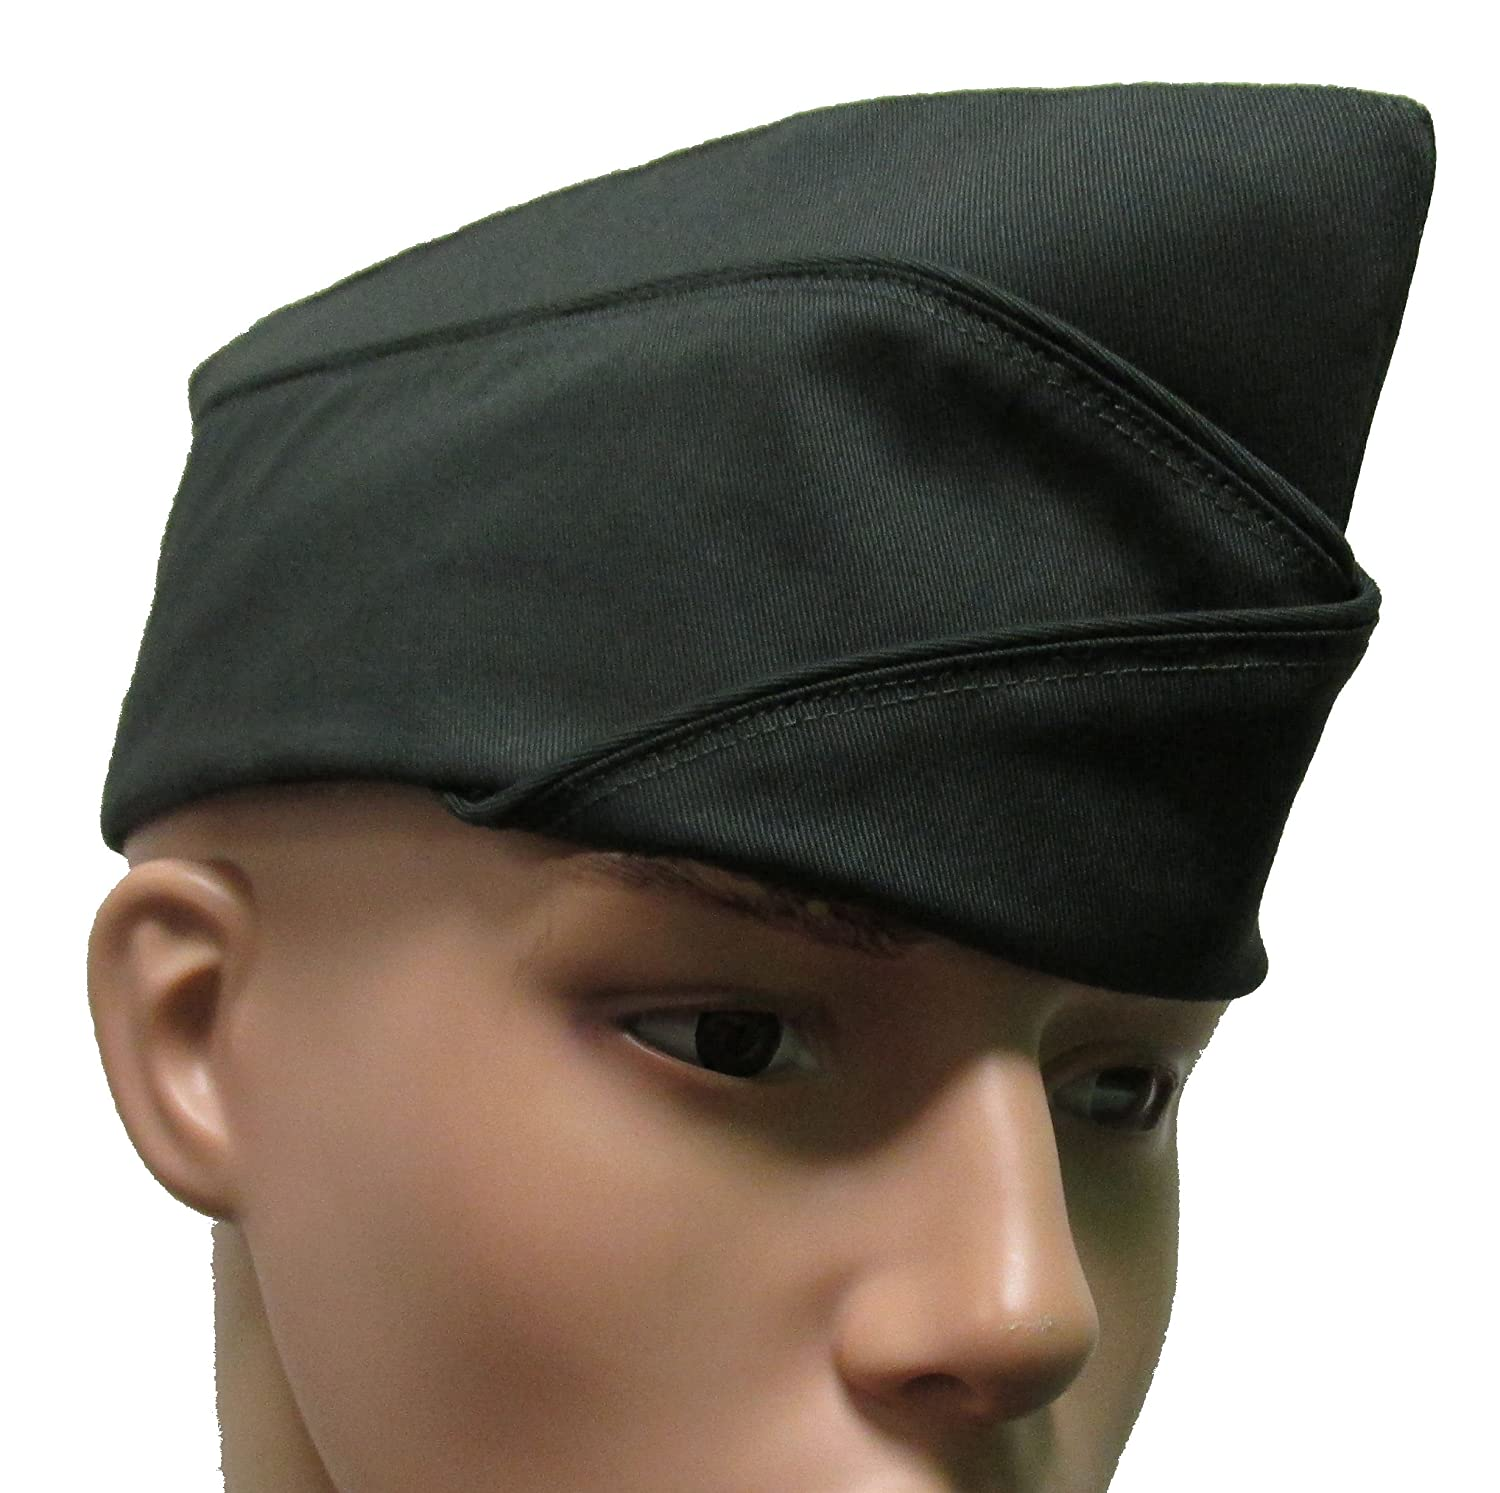 cdd9e7eba19 Amazon.com  Military Uniform Supply Garrison Cap - O.D. GREEN  Clothing